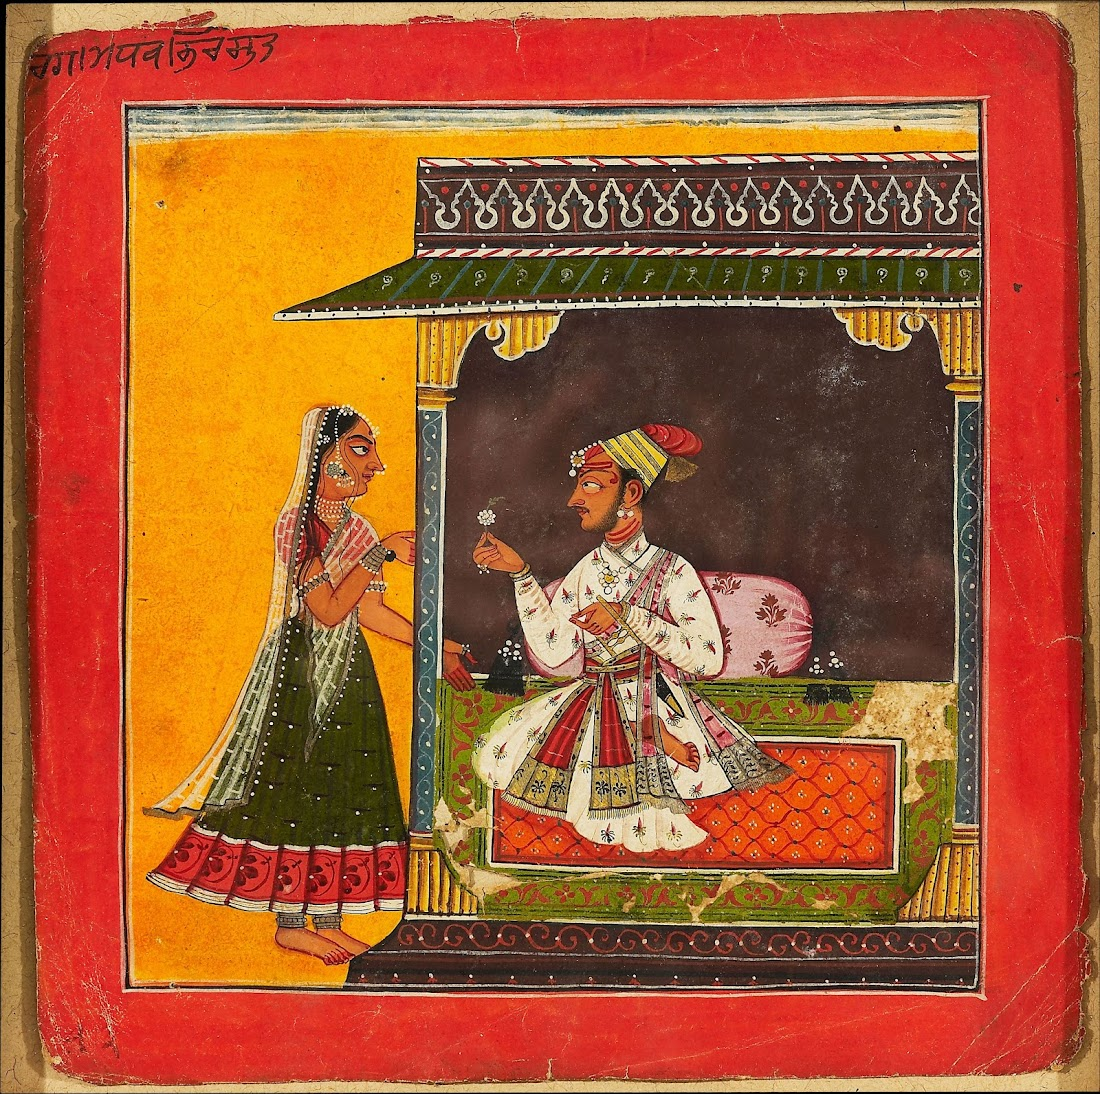 A Prince Seated within a Palace Chamber and Greets a Lady